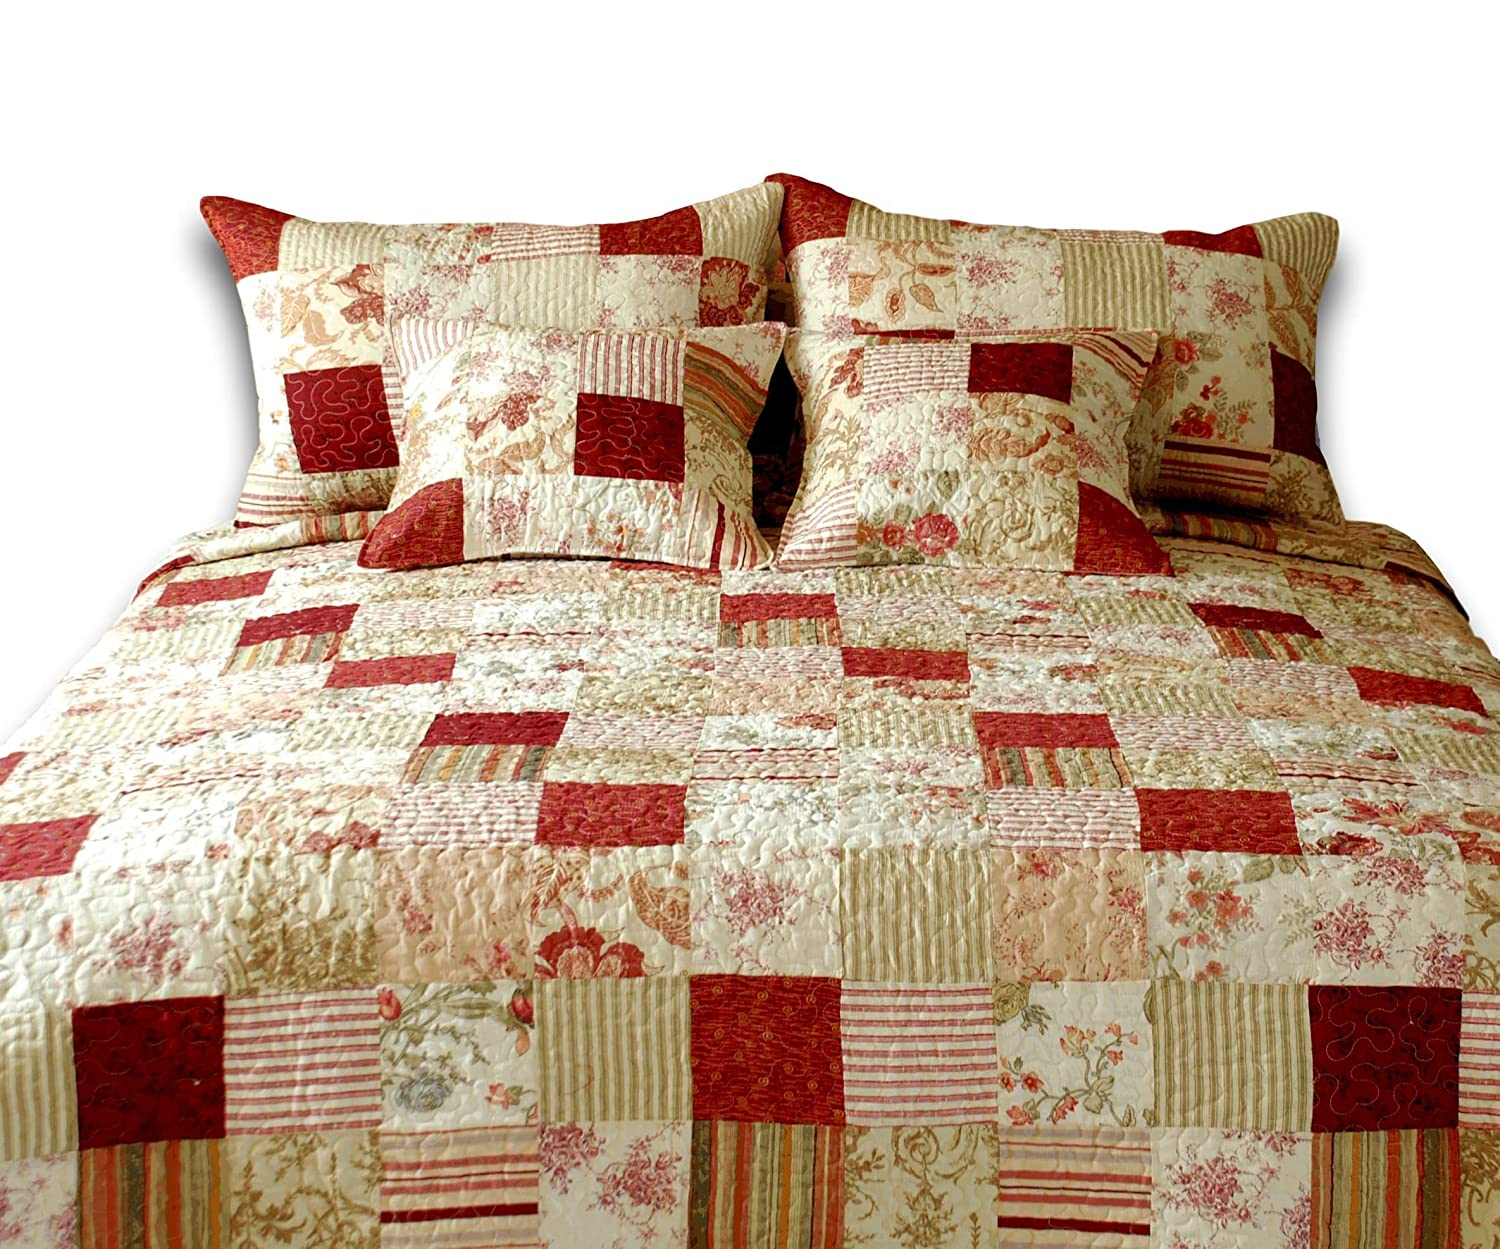 Tache Home Fashion Strawberry Field Cottage Floral Patchwork Quilt Bedspread Set, Twin, Red